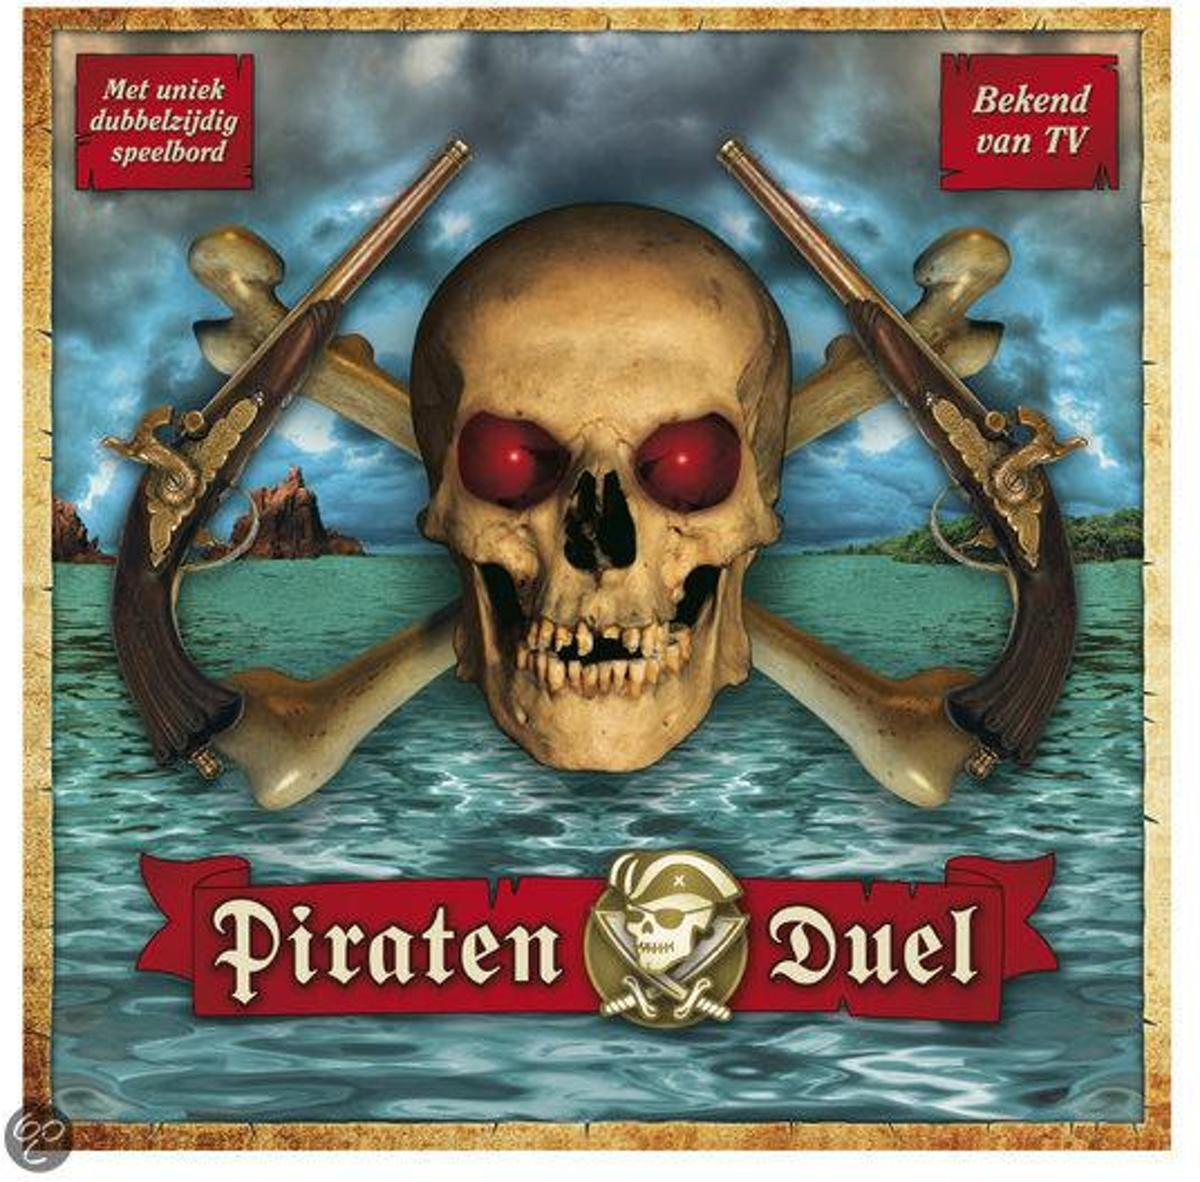 Het Piratenduel - Bordspel